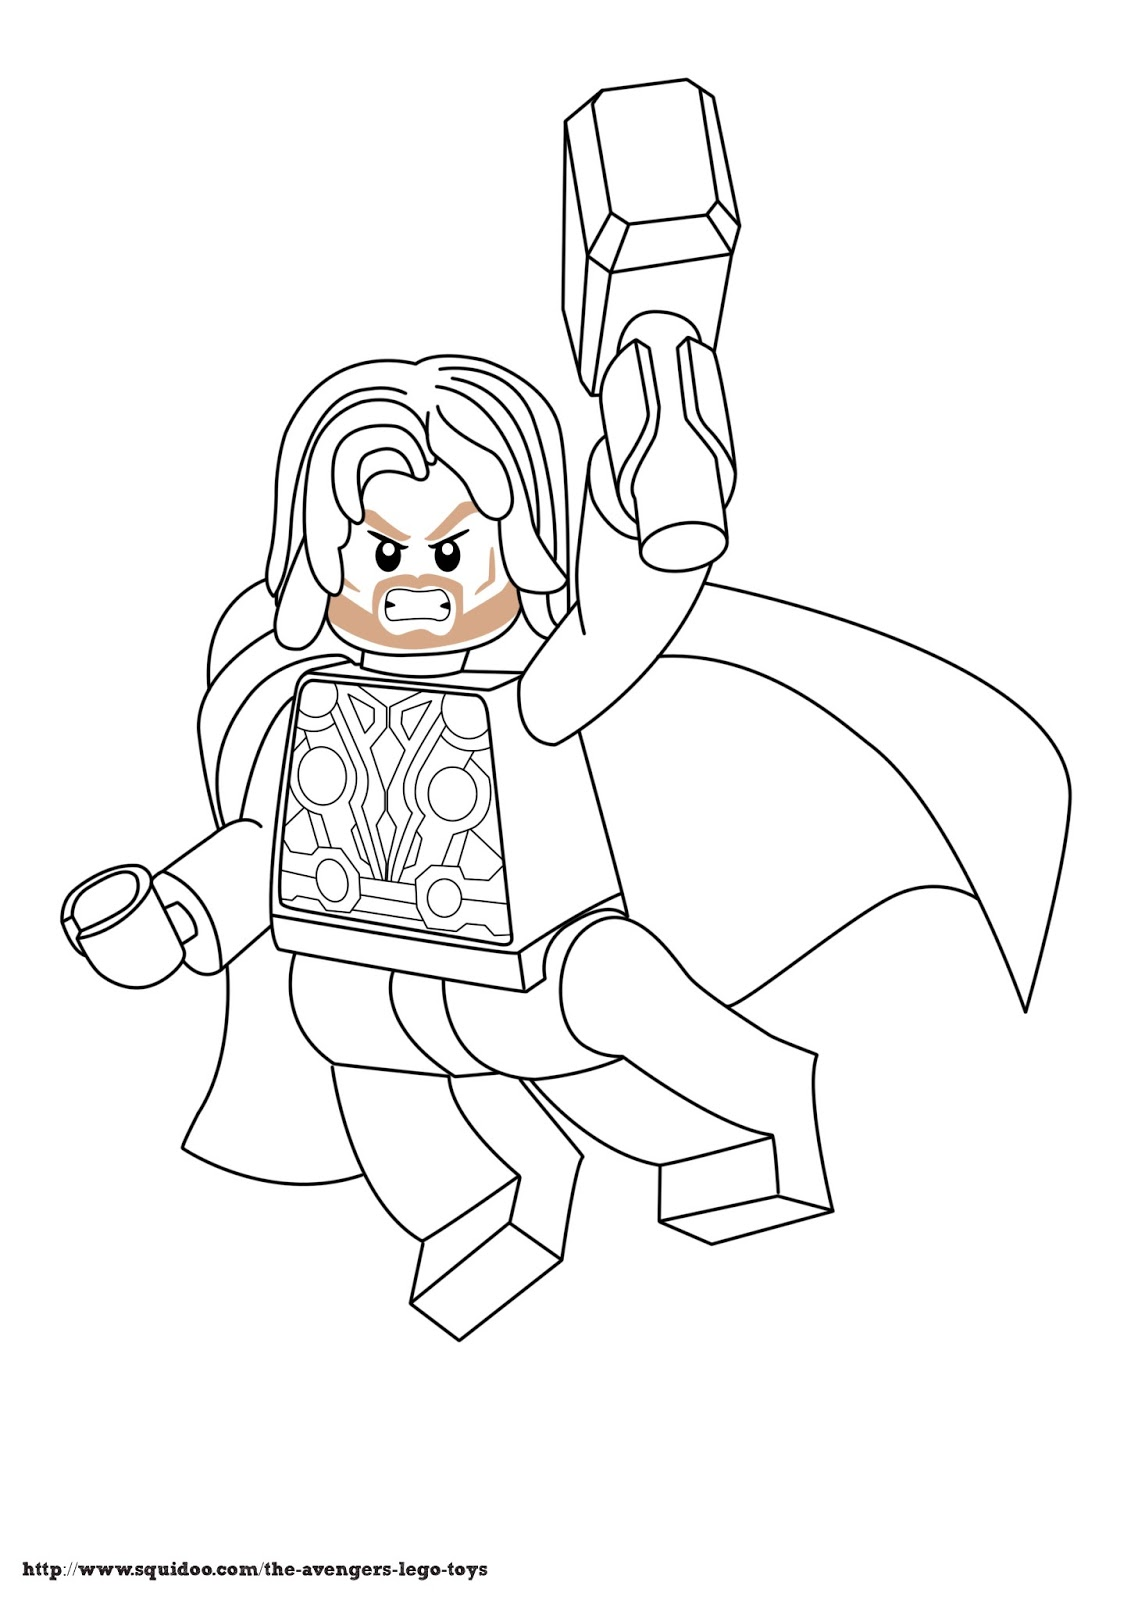 Free Printable Avengers Coloring Pages Good Avengers Coloring